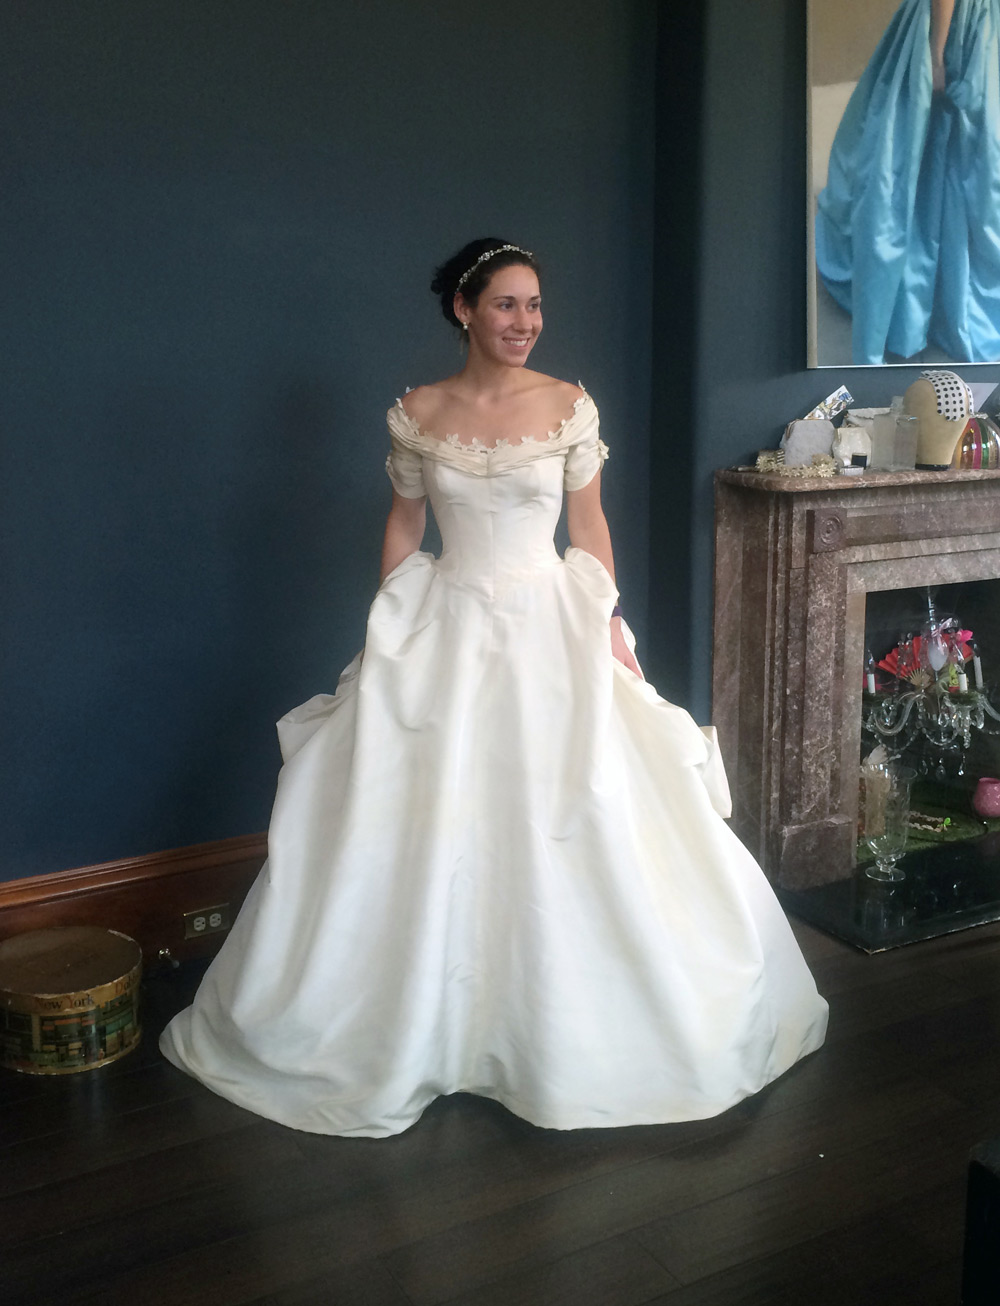 The lovely Caroline, in a dress fit for a princess.